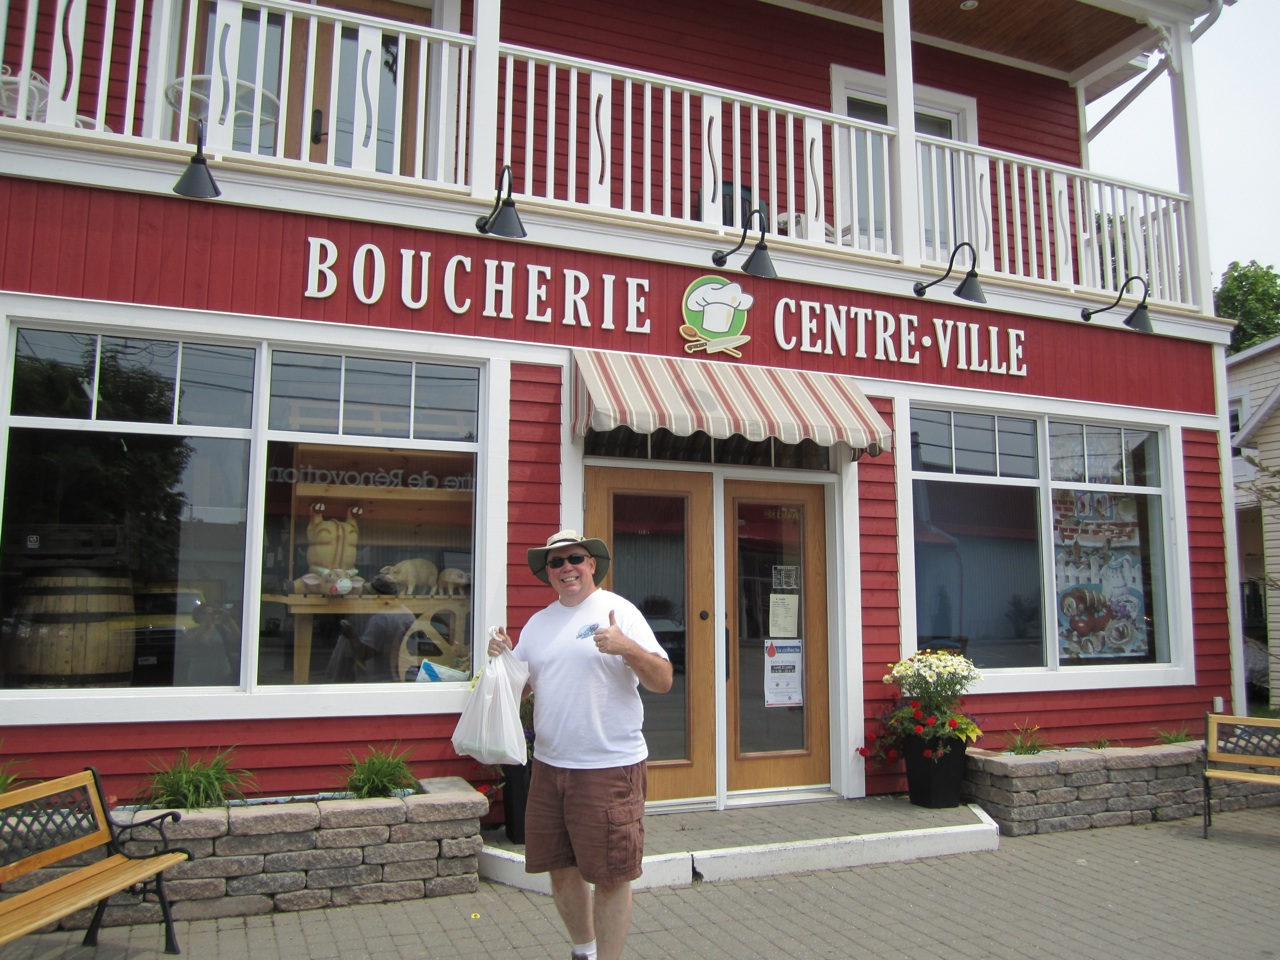 David Outside A French Butcher Shop In Town